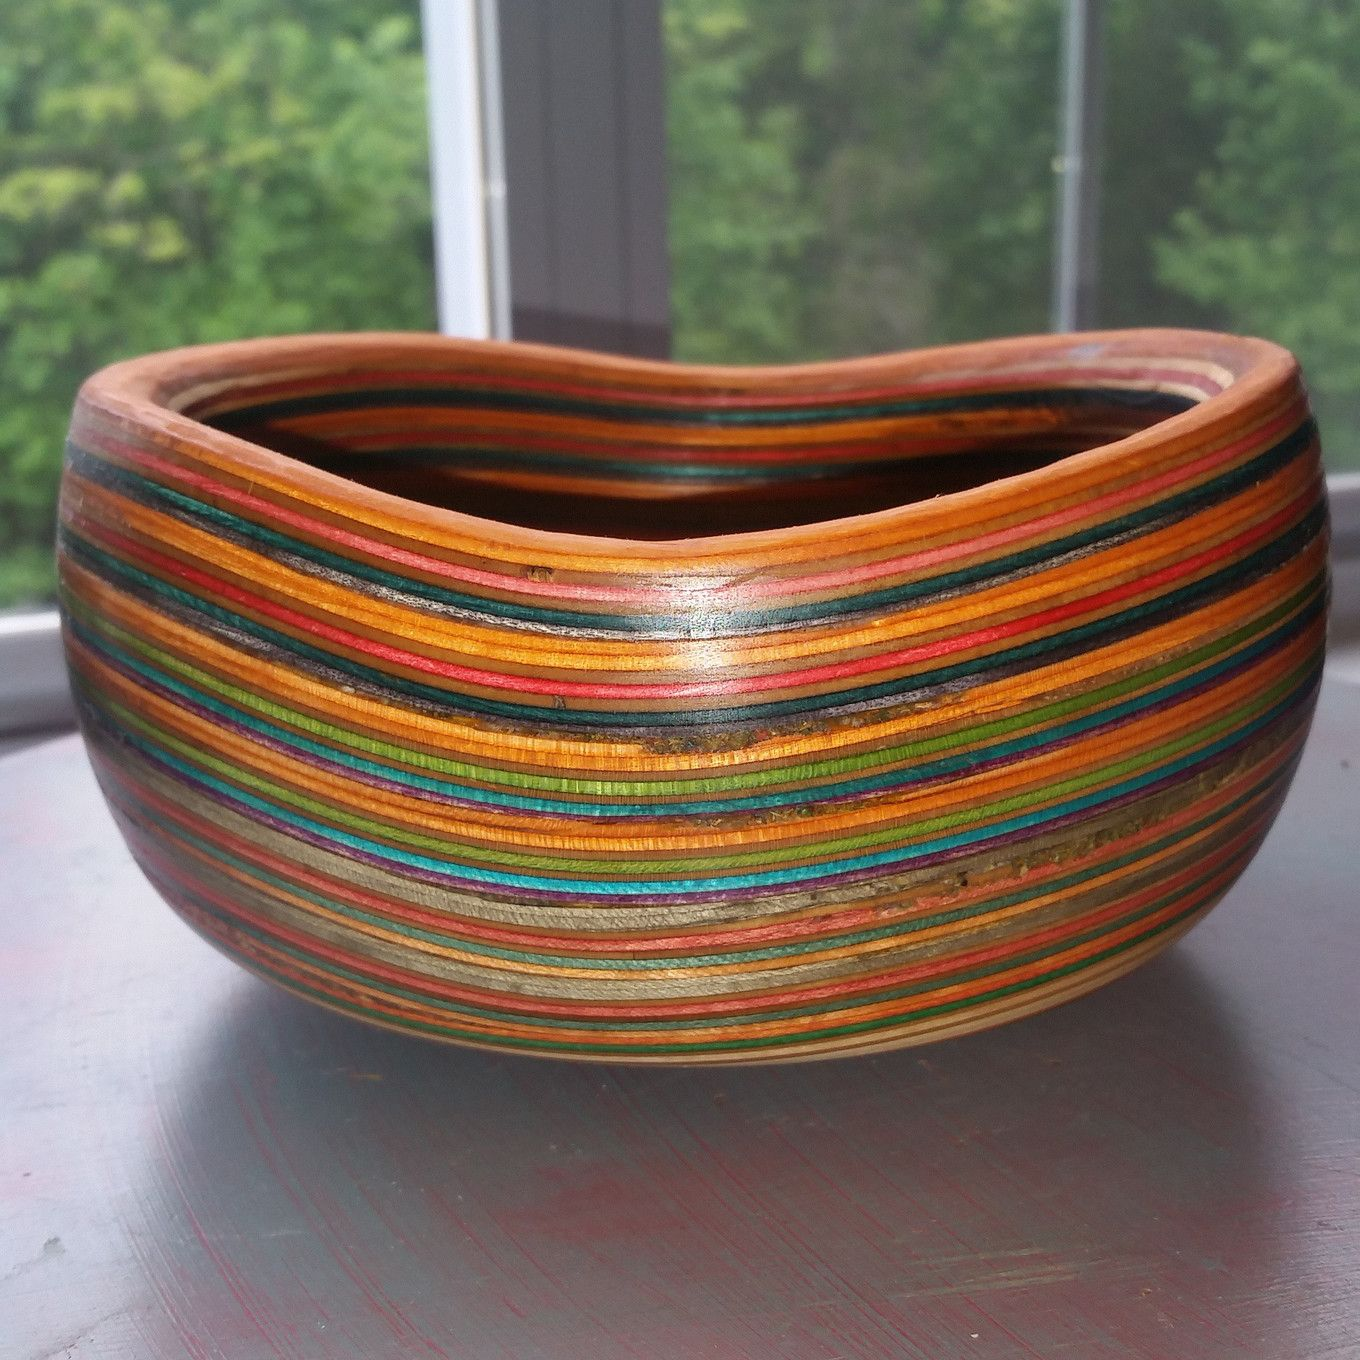 Bowl Made From Recycled Skateboard Noses And Tails Skateboard Wood Turned Bowls Recycling